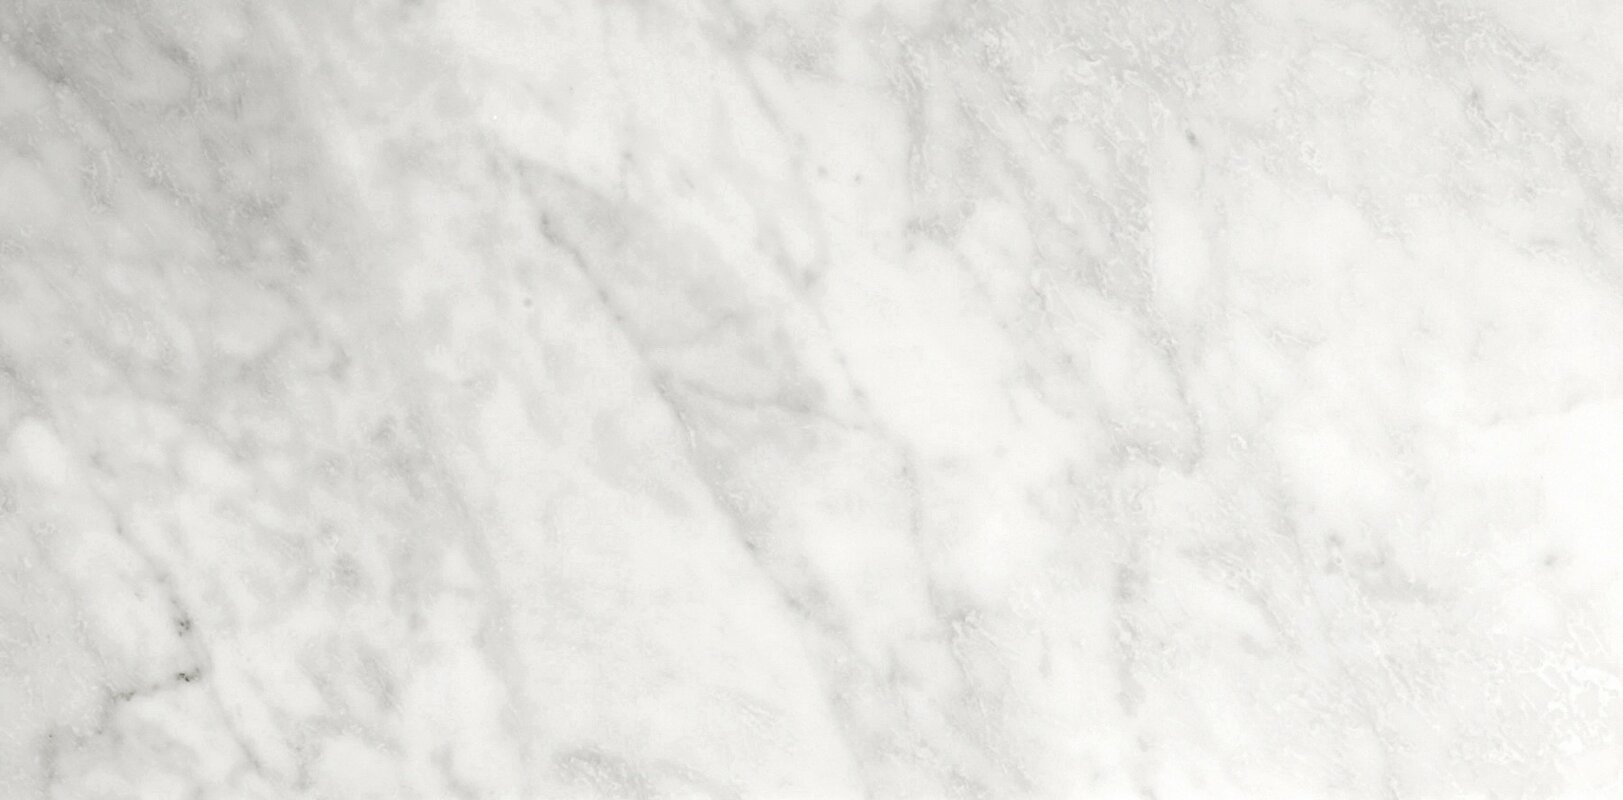 Emser Tile Marble 12 X 24 Field In Bianco Gioia Honed